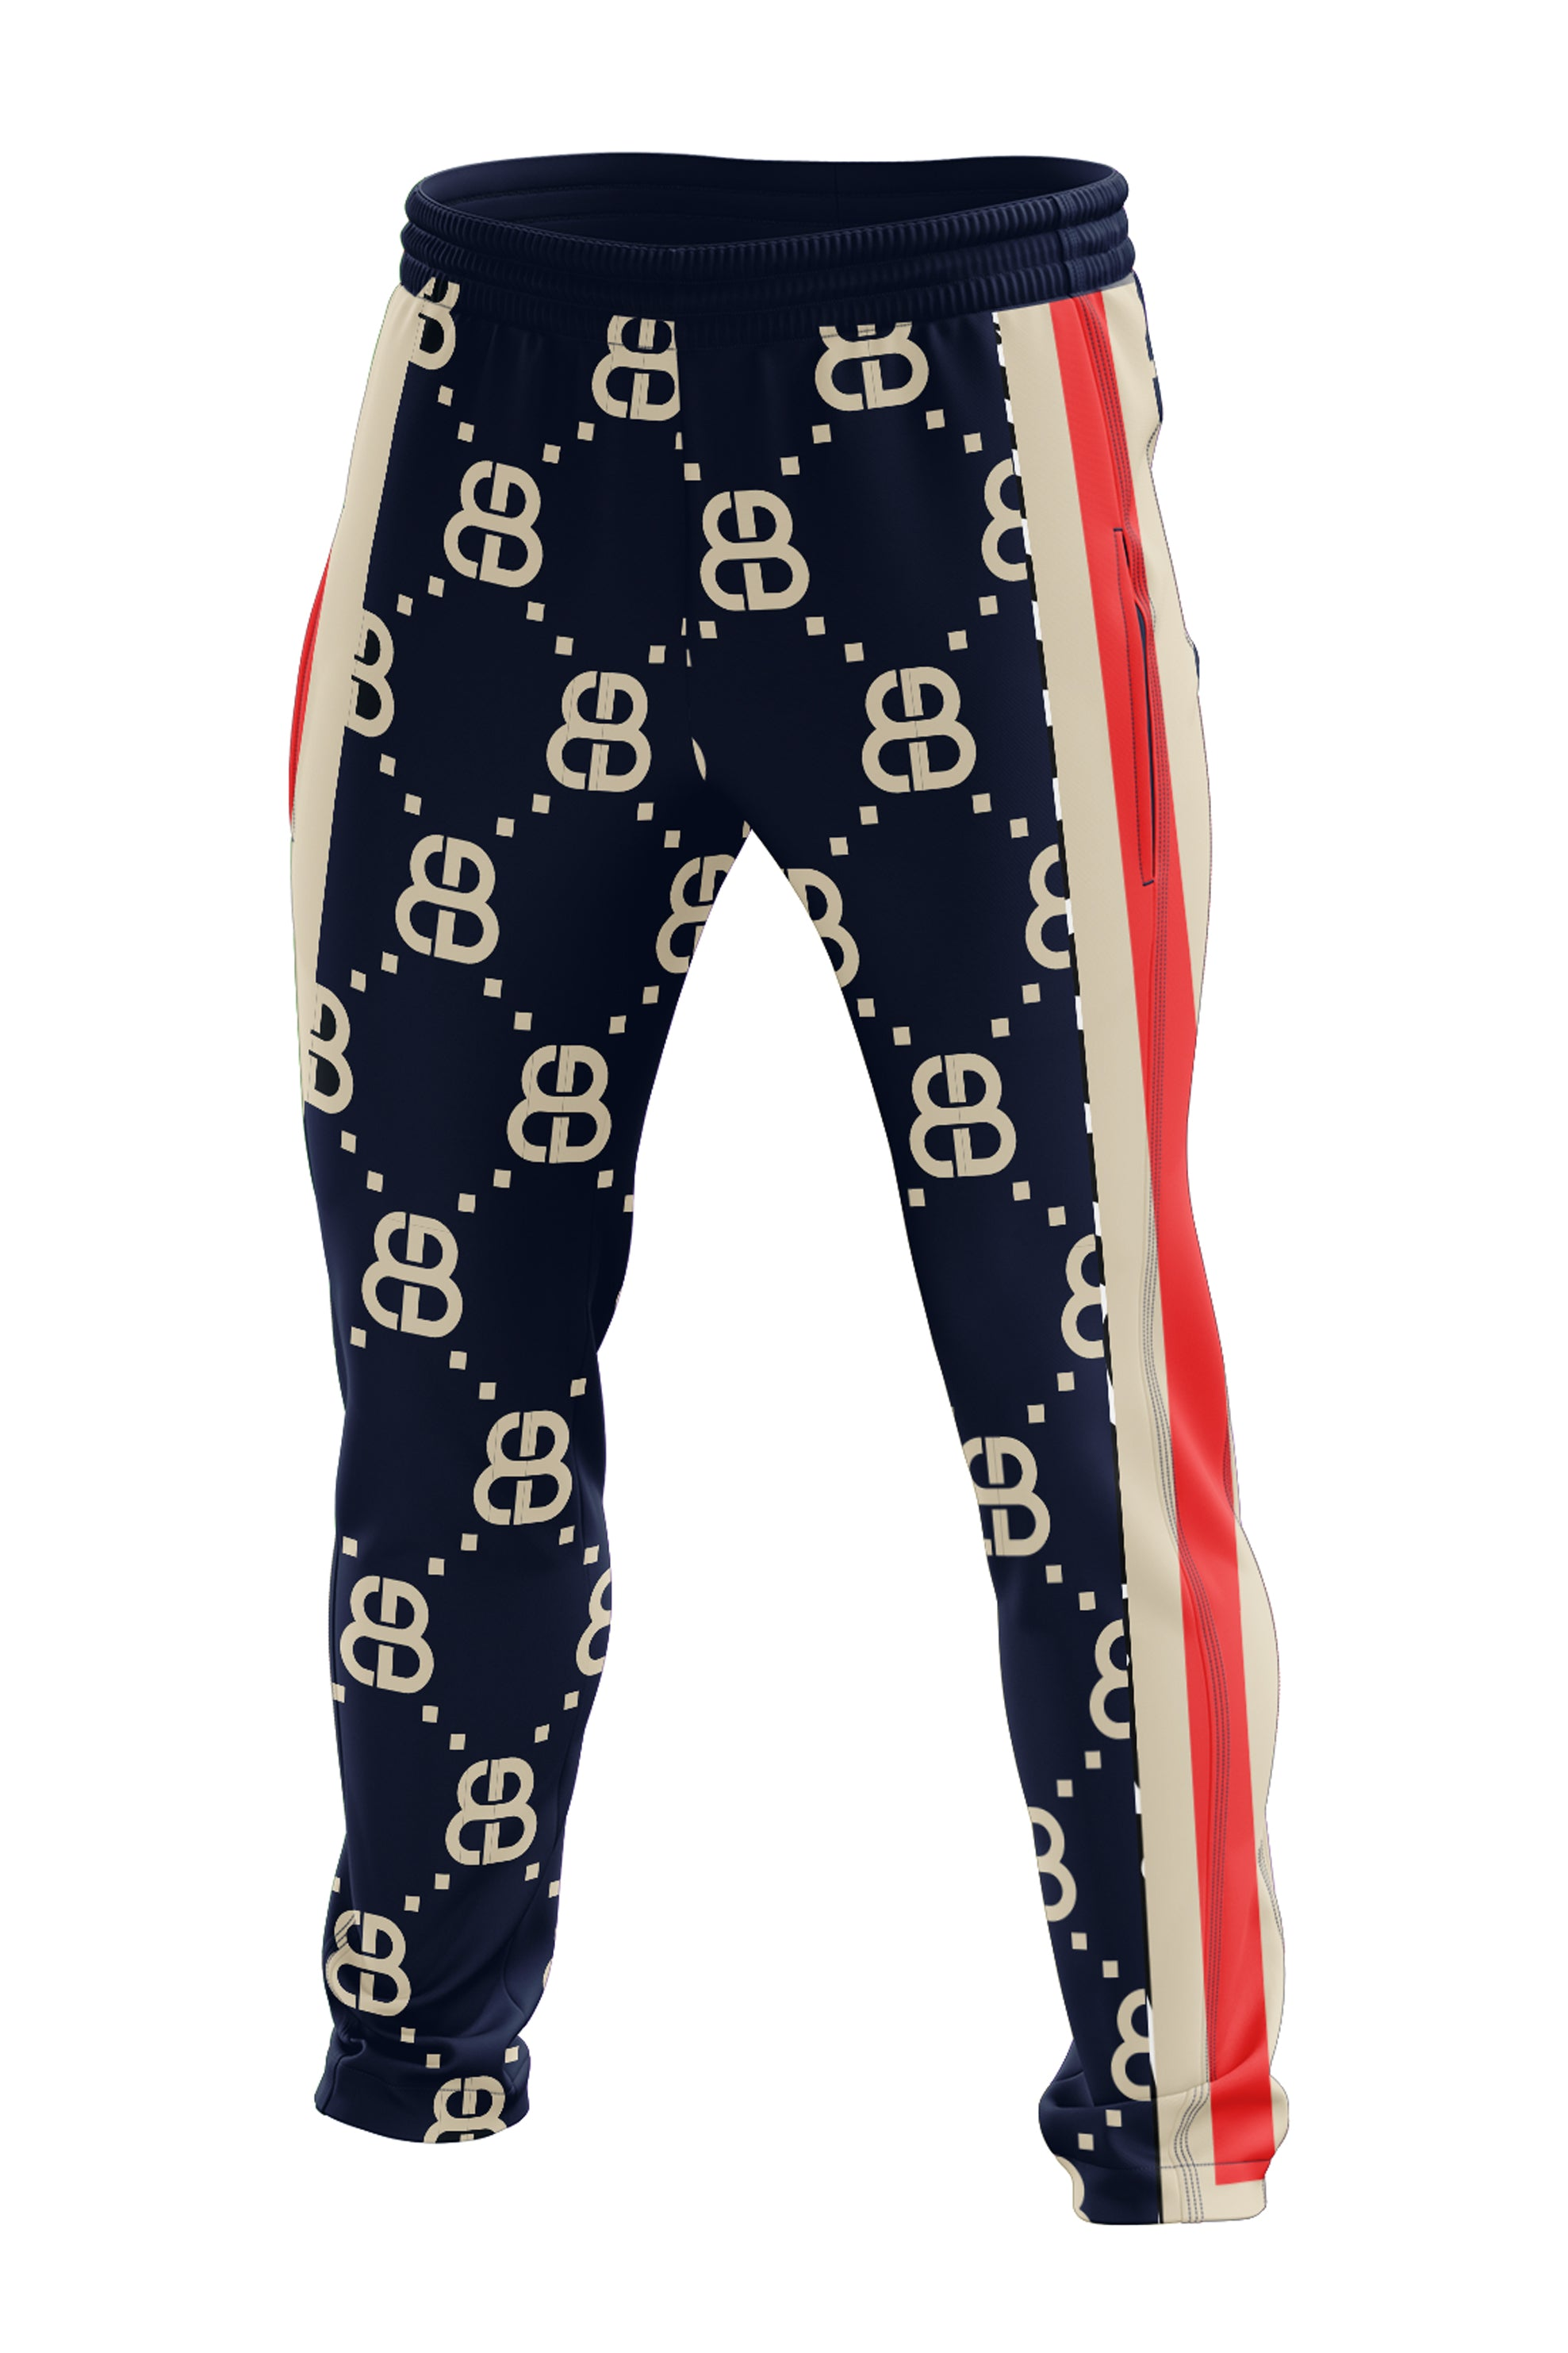 THE MONOGRAM TRACK PANTS- NAVY